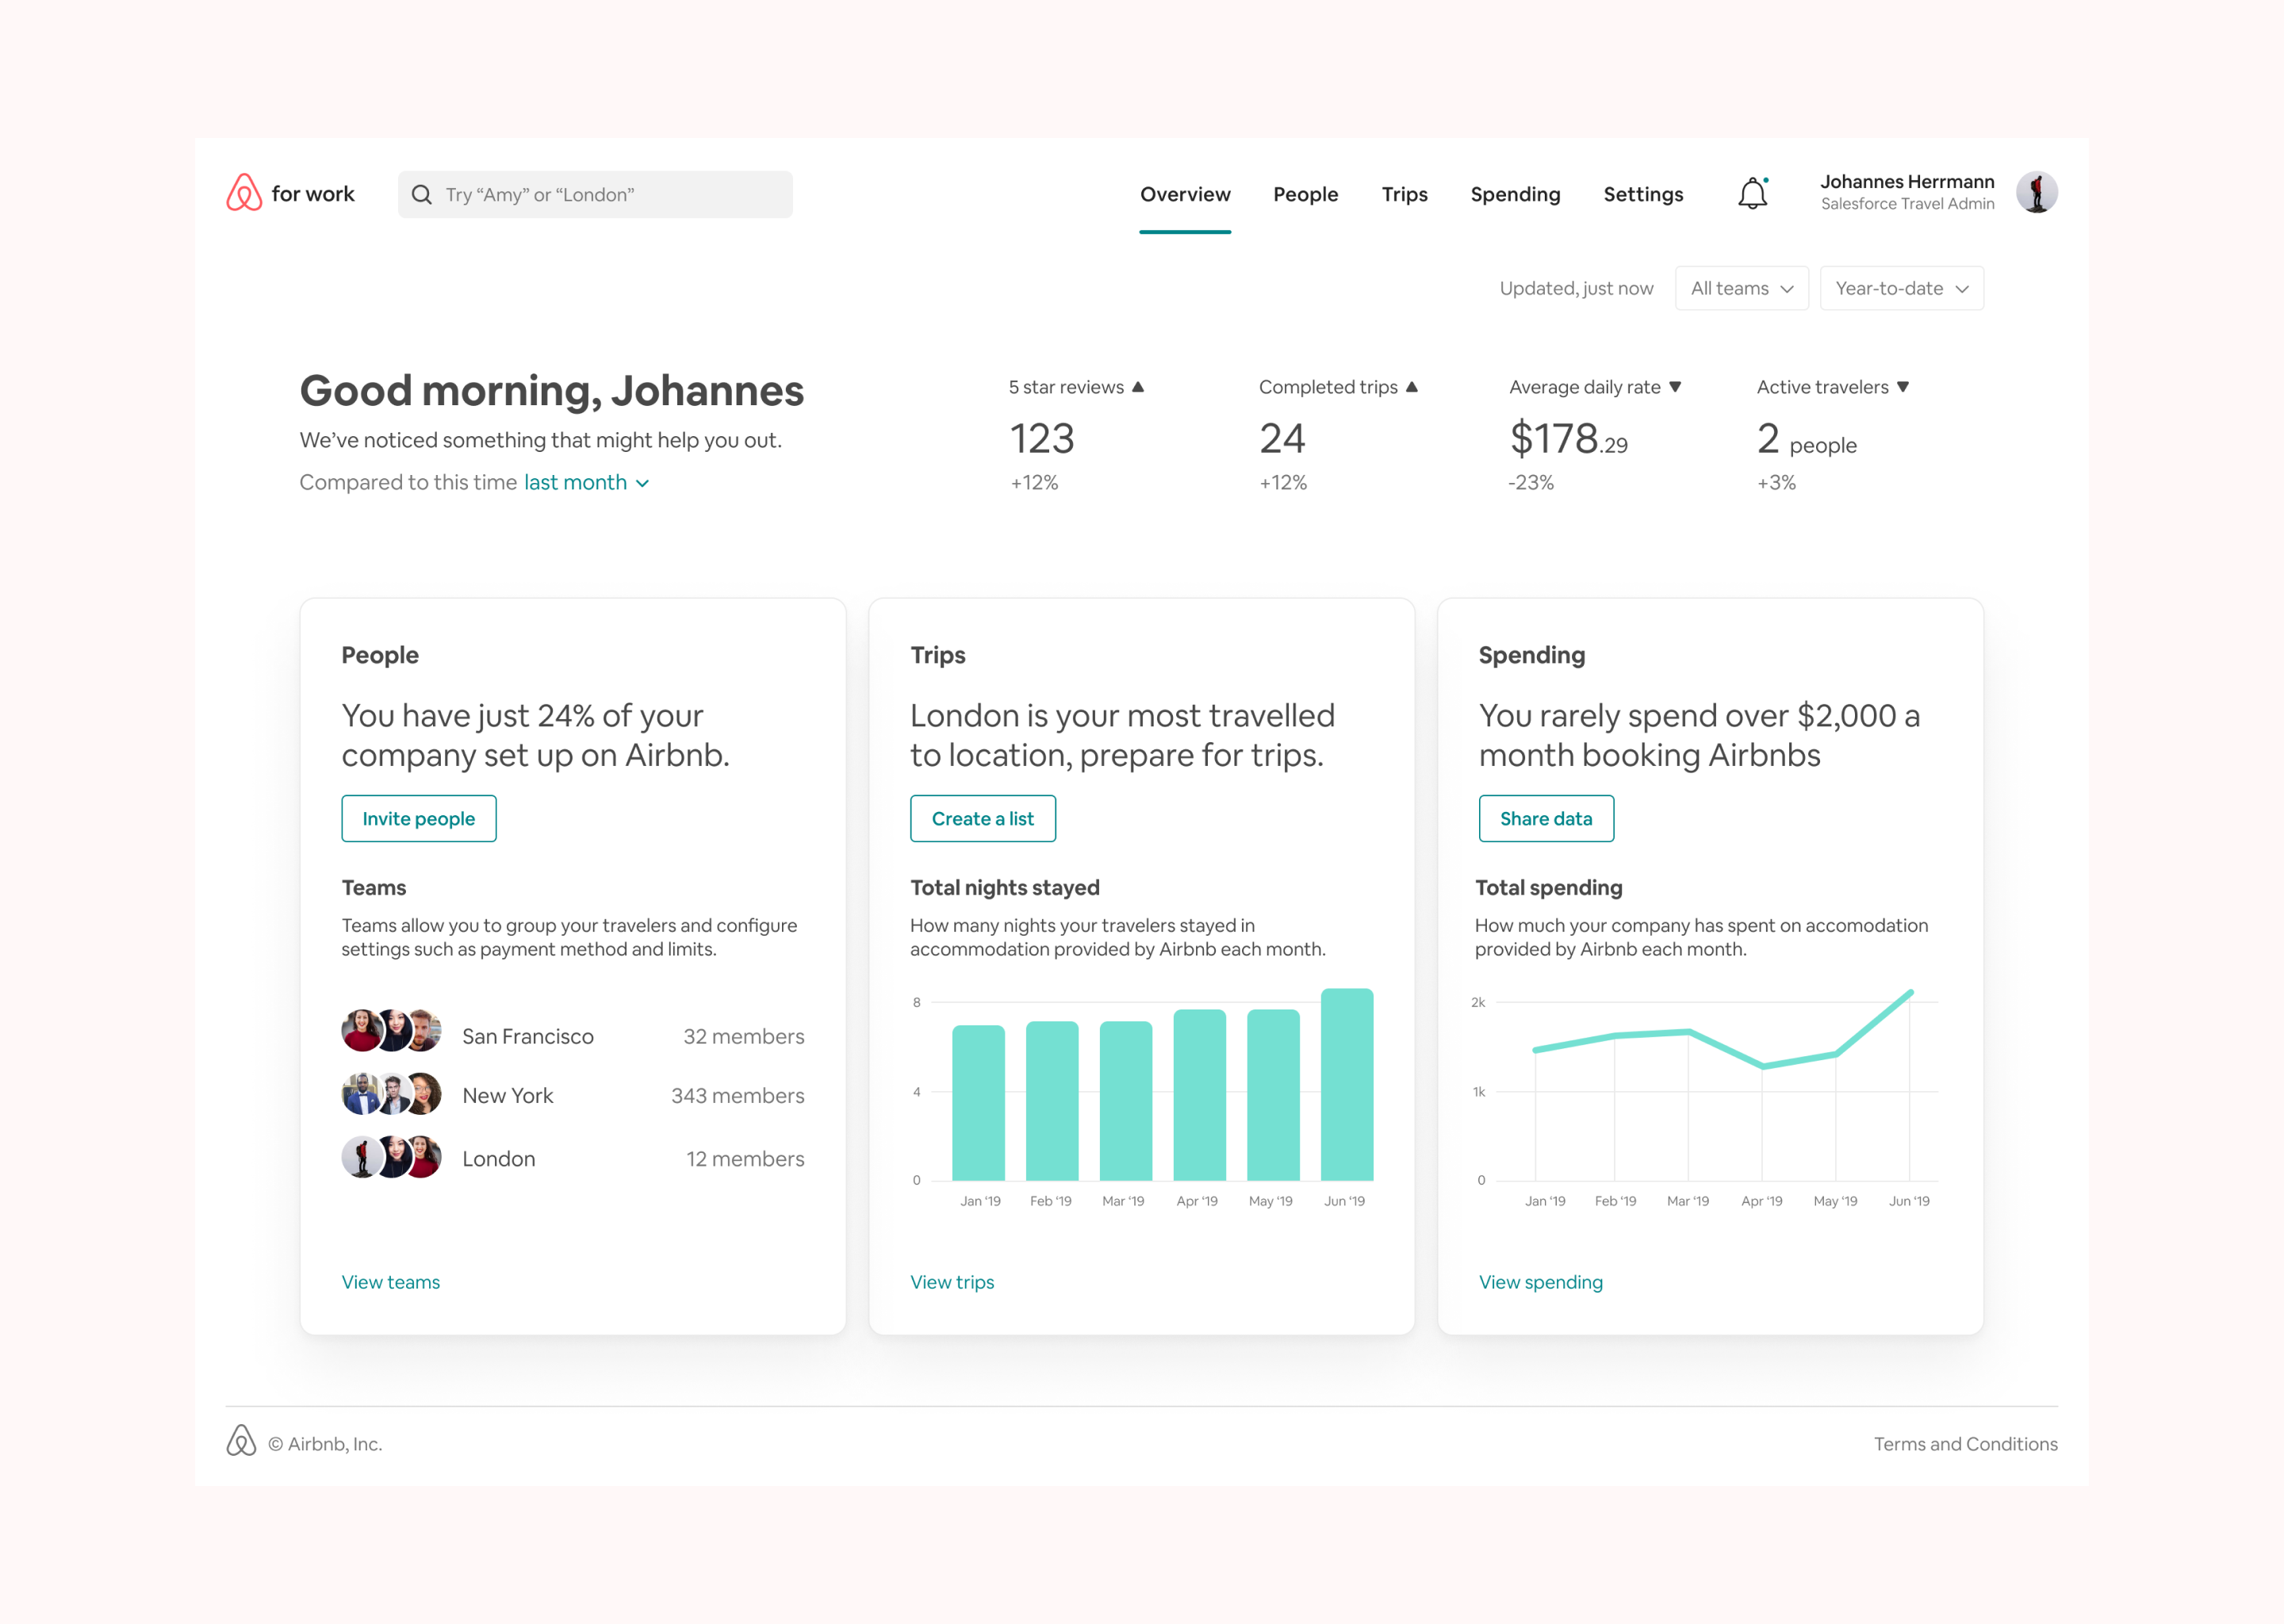 A screenshot of the Airbnb for Work dashboard